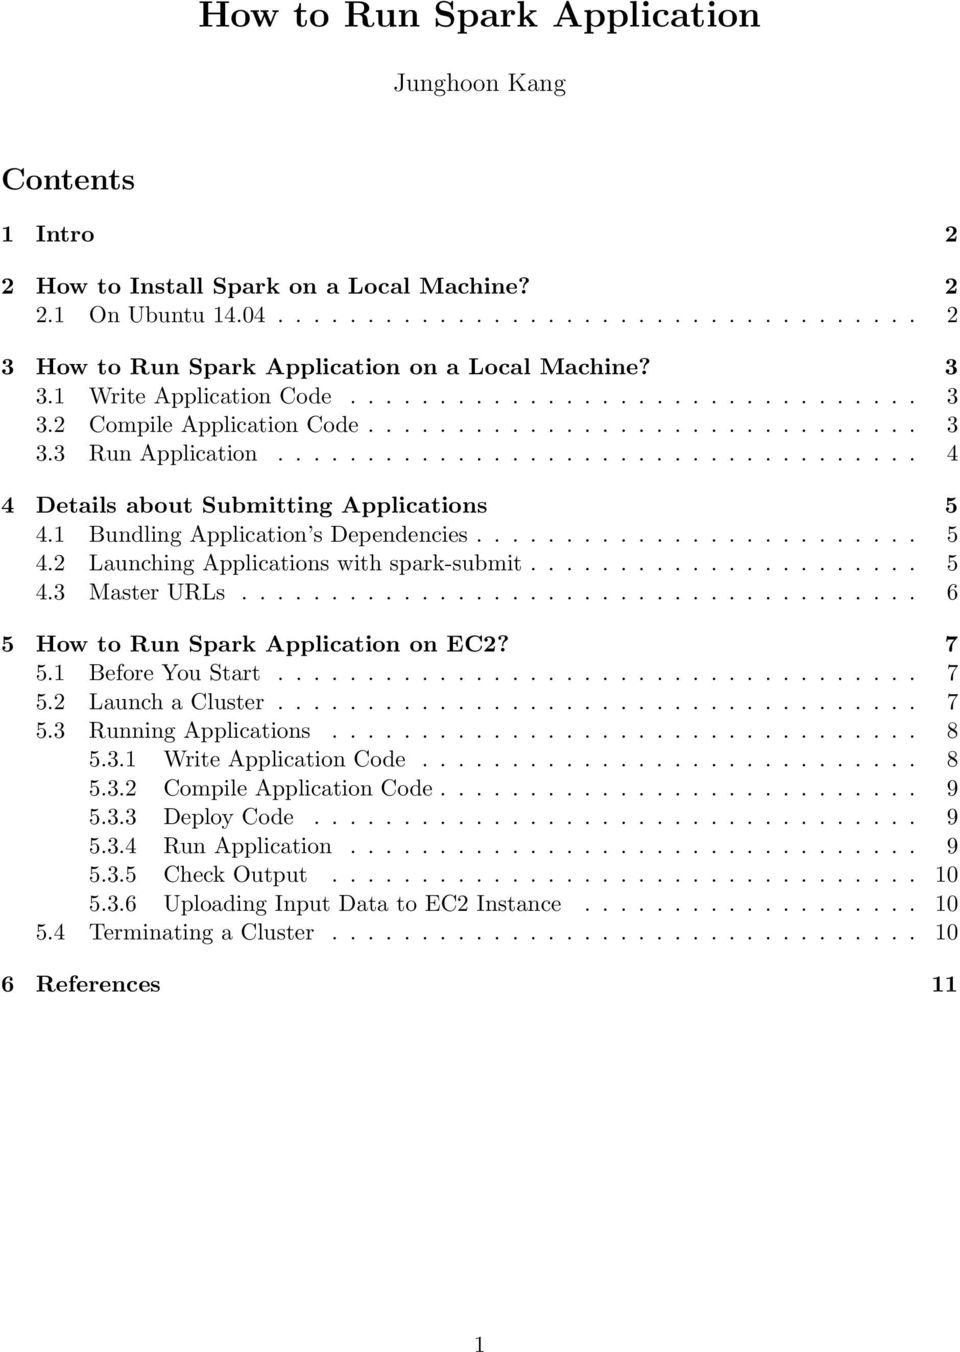 How to Run Spark Application - PDF